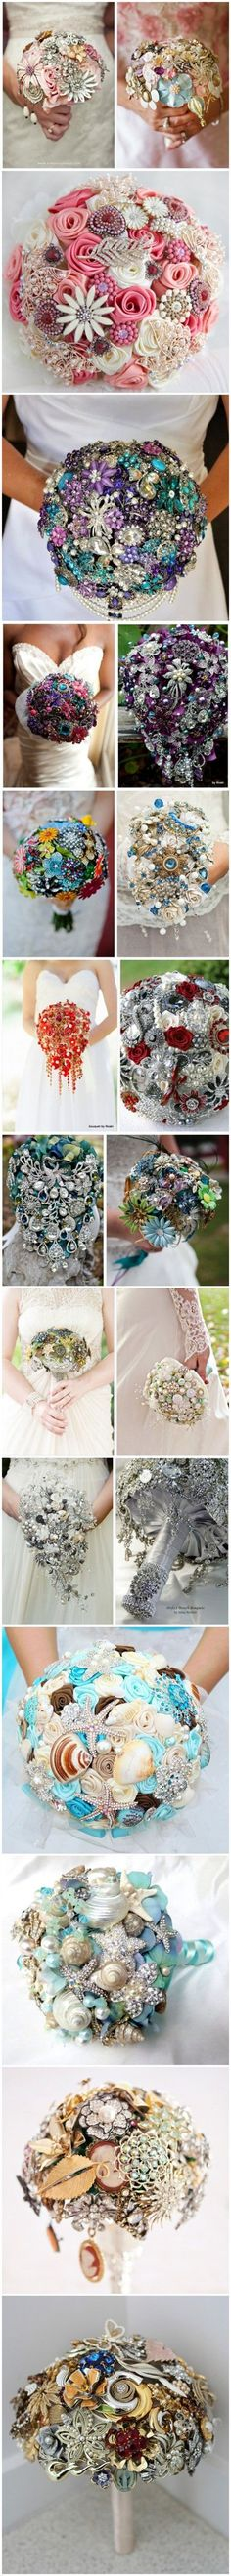 DIY Brooch Bouquets                                                                                                                                                                                 More